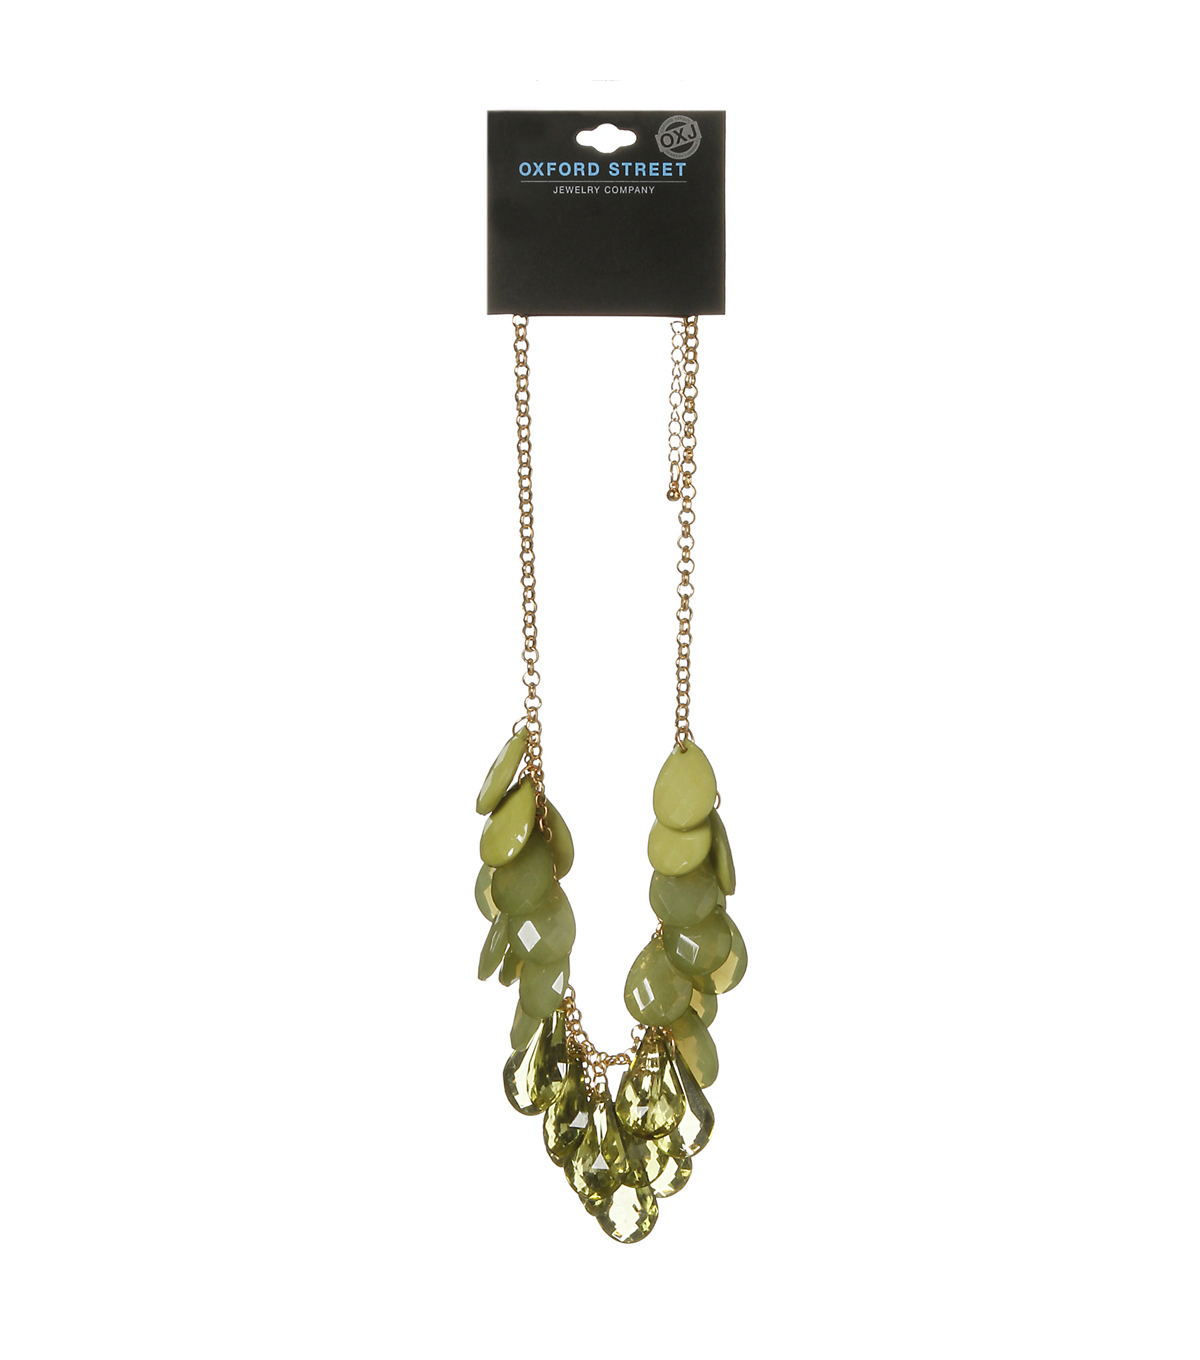 Oxford Street Jewelry Co. Olive Tear Drop Necklace w/Gold Chain